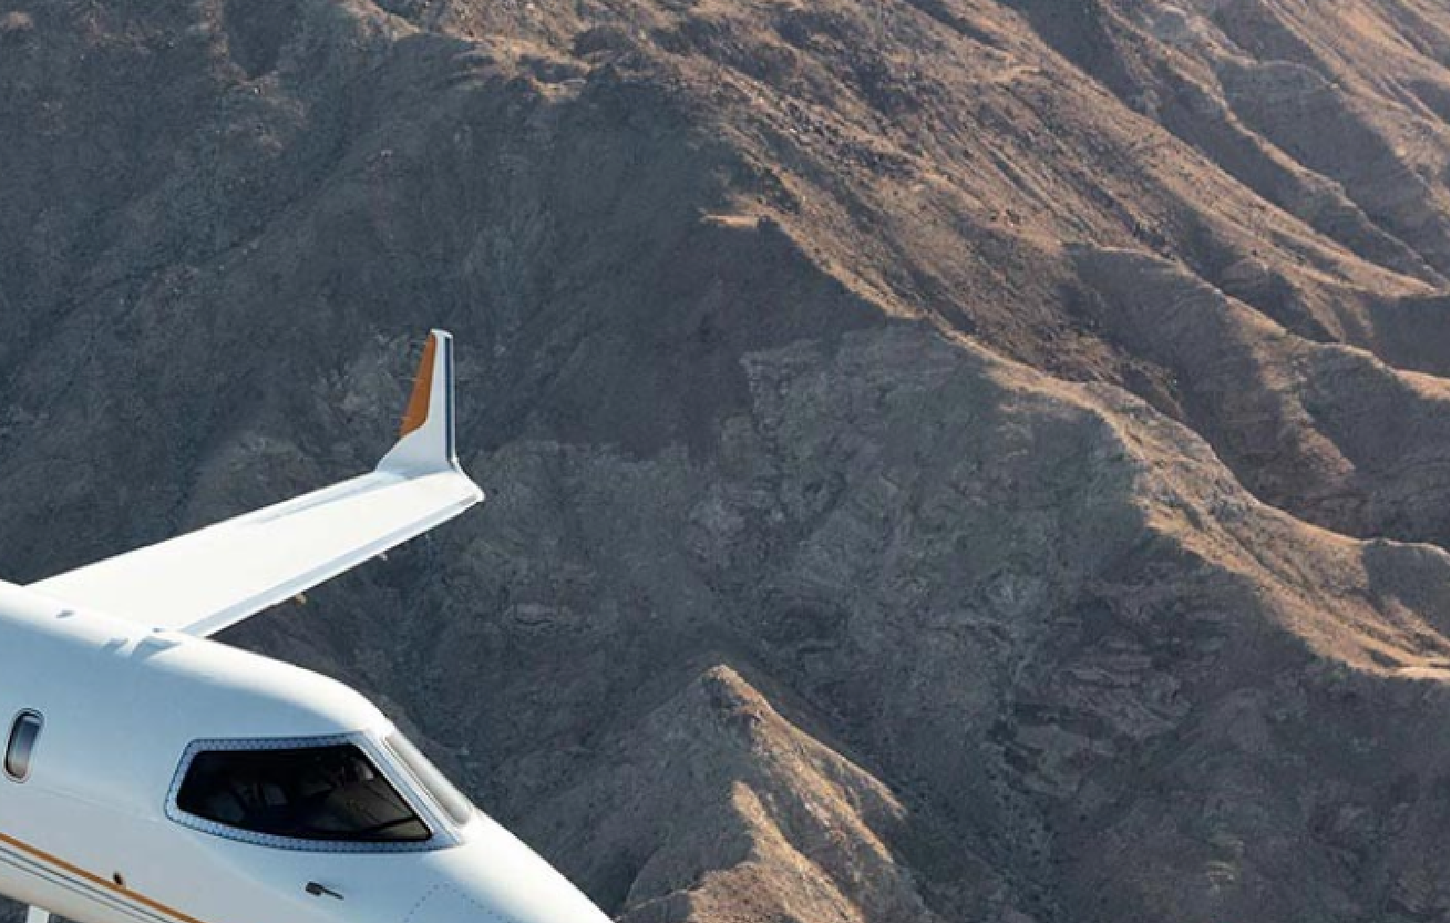 Jet flying next to mountains